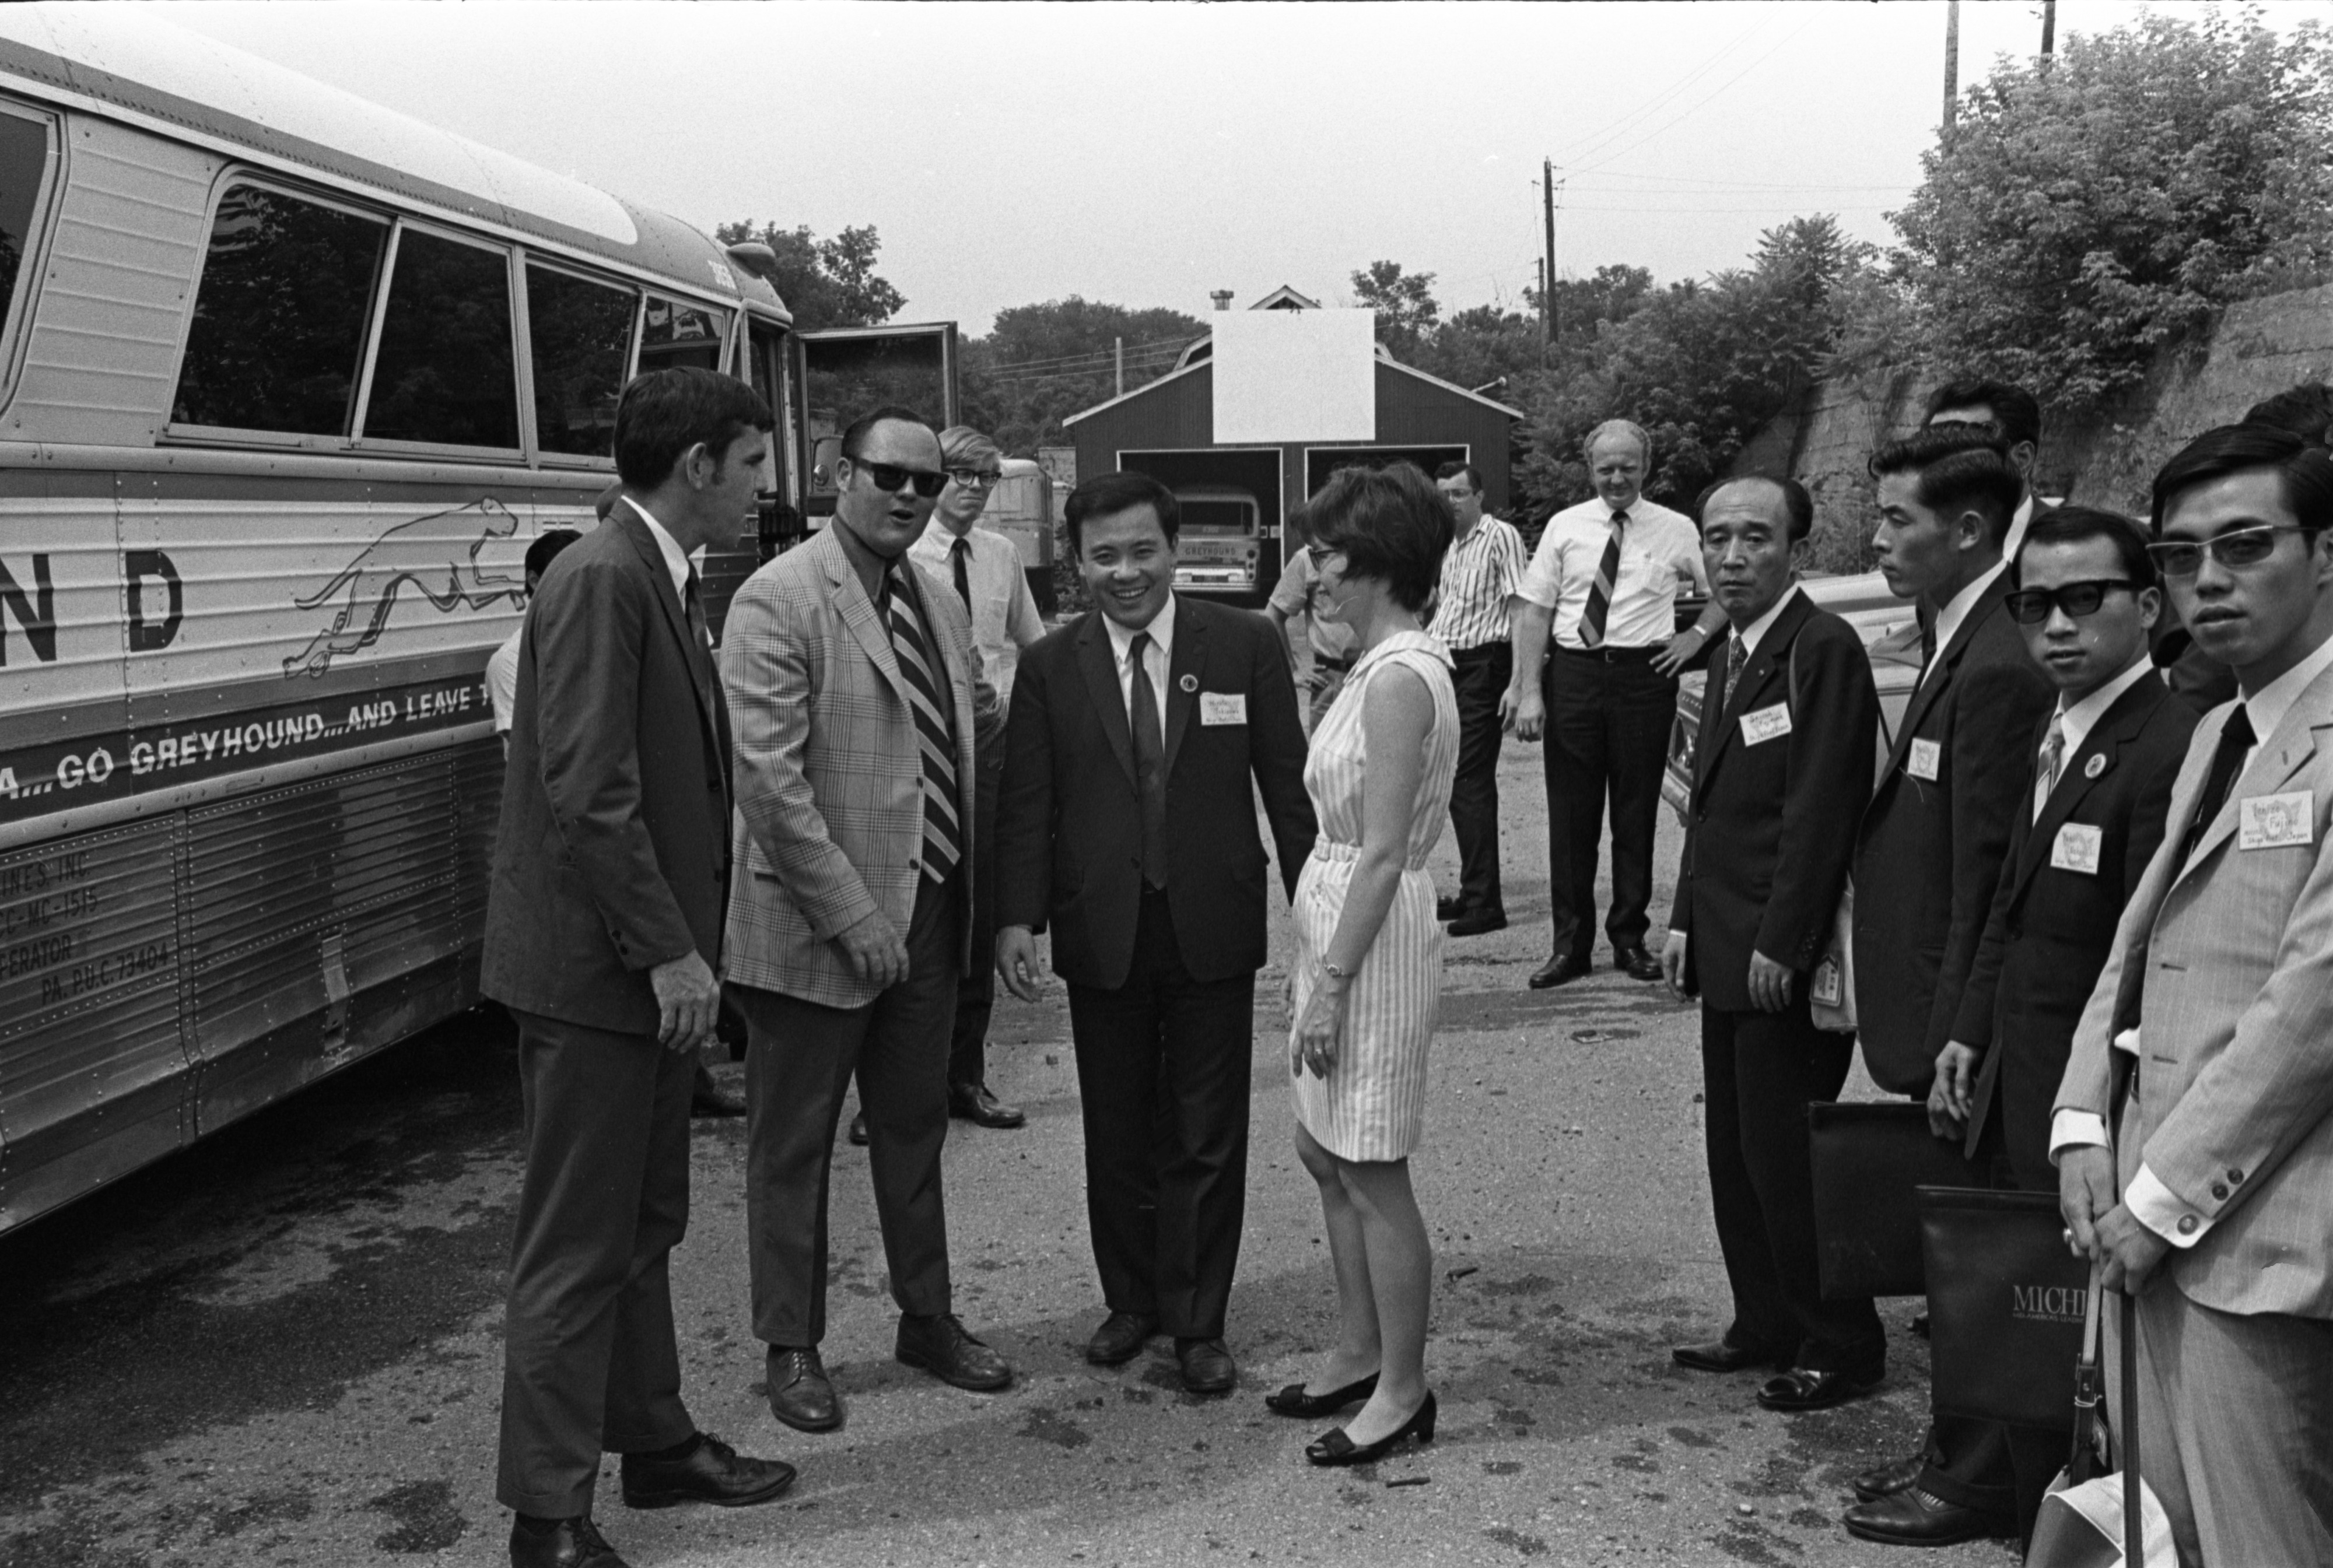 Visitors From The Sister State Of Shiga, Japan, Are Greeted By Members Of The Jaycees, July 14, 1970 image